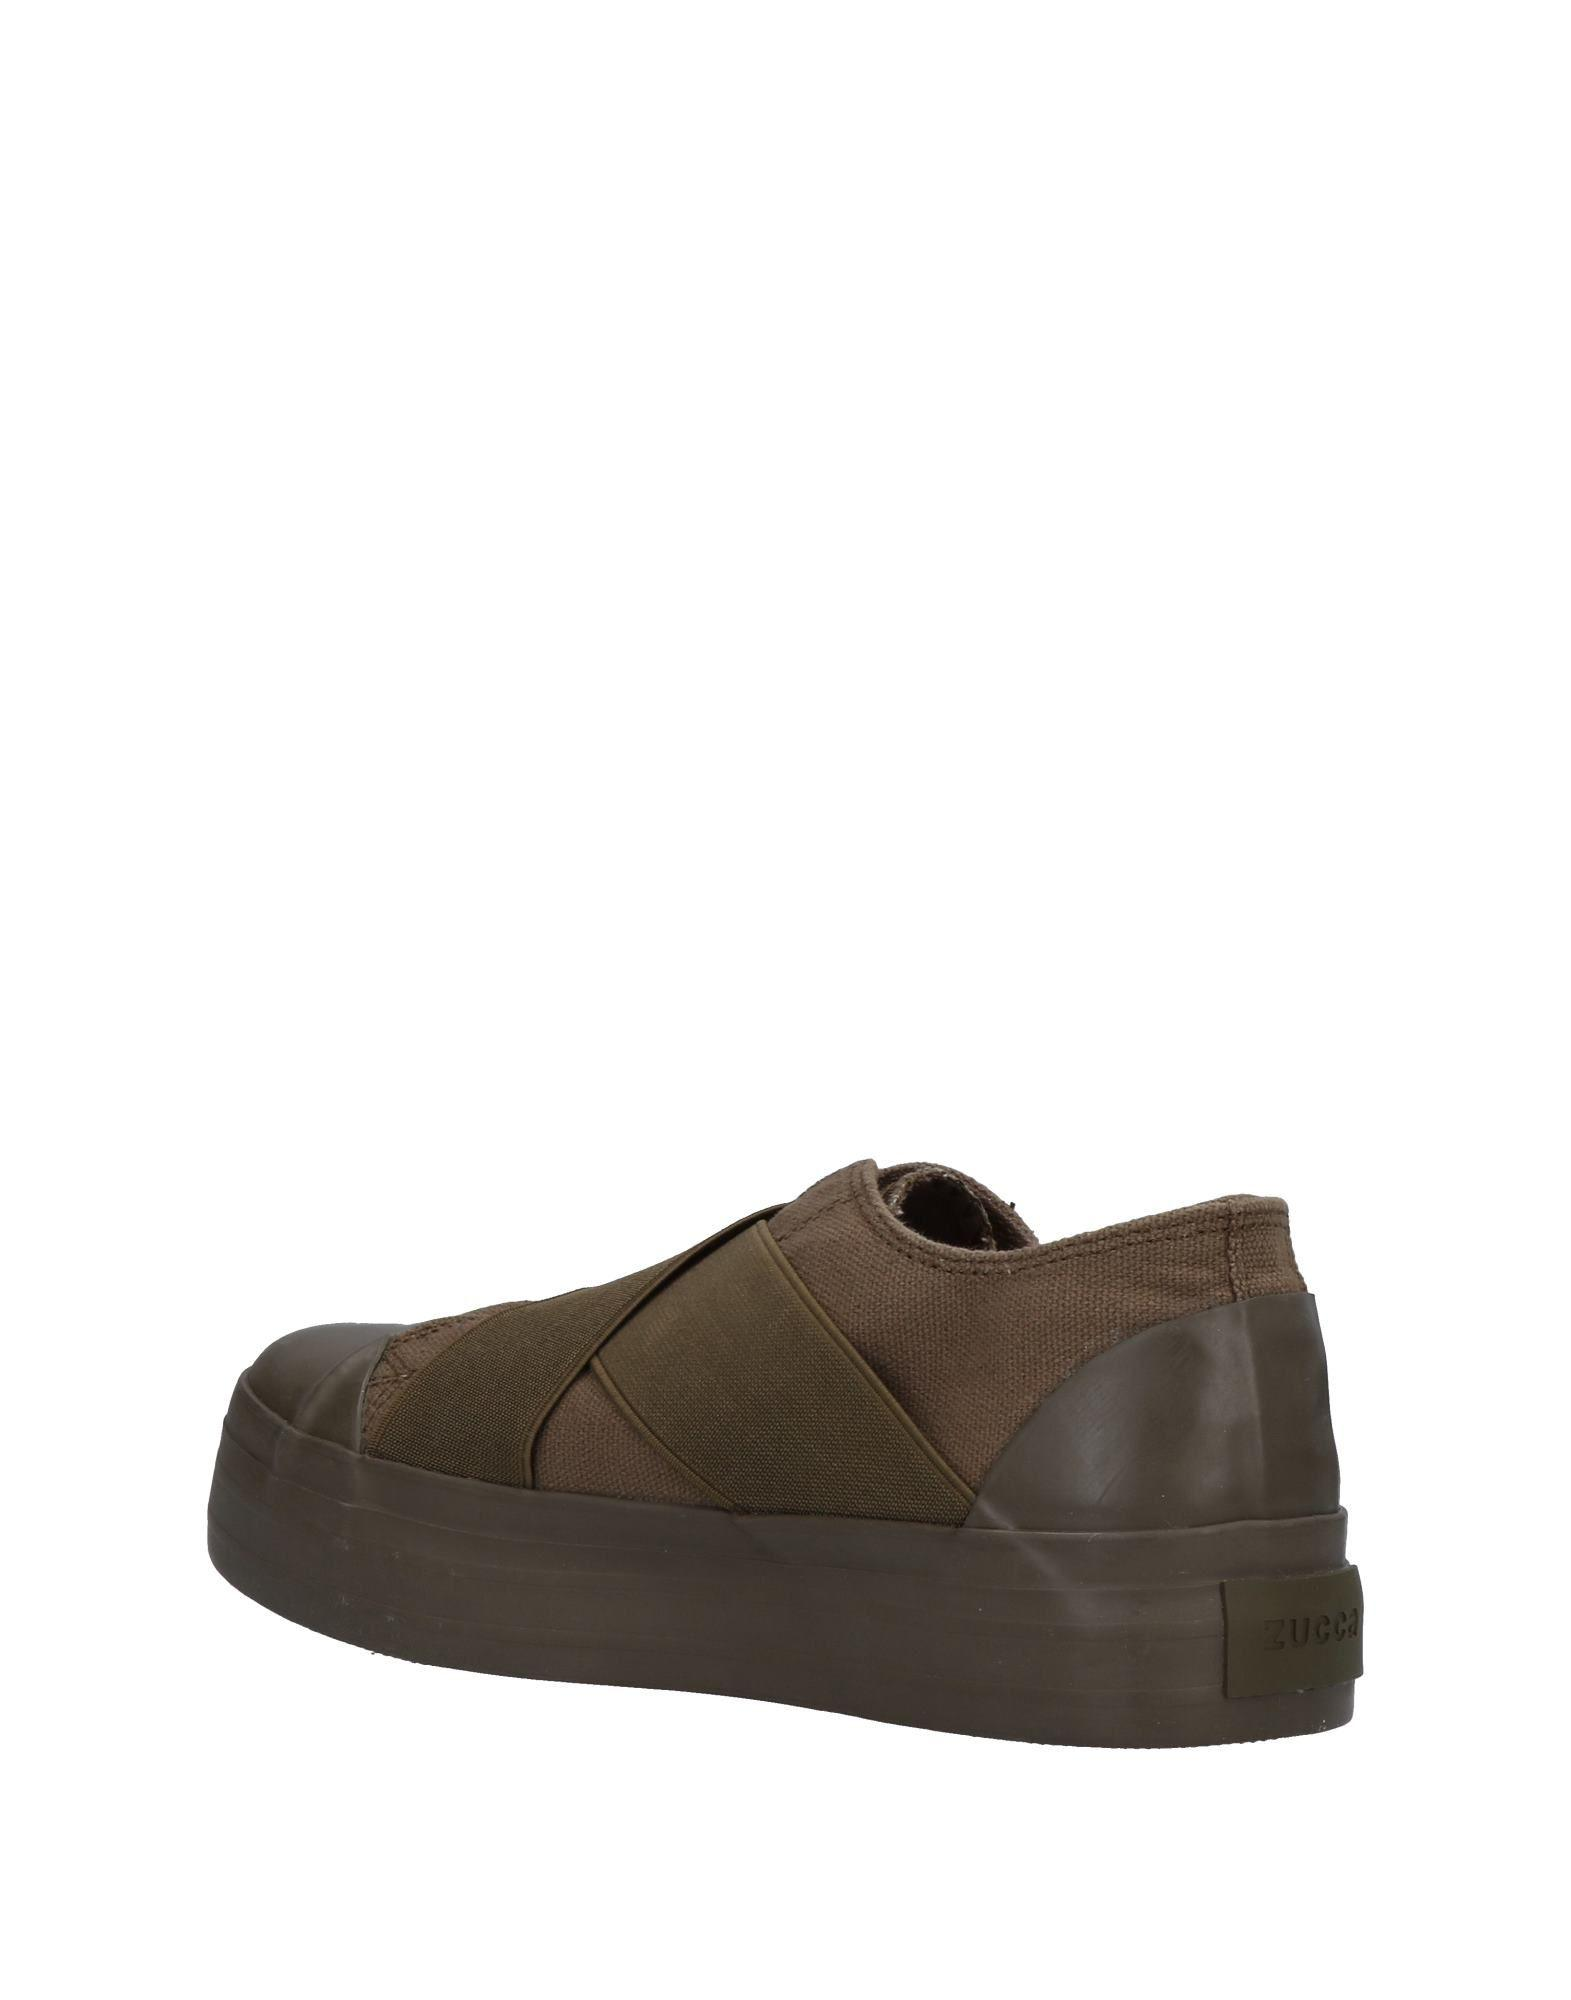 Zucca Canvas Low-tops & Sneakers in Military Green (Green)